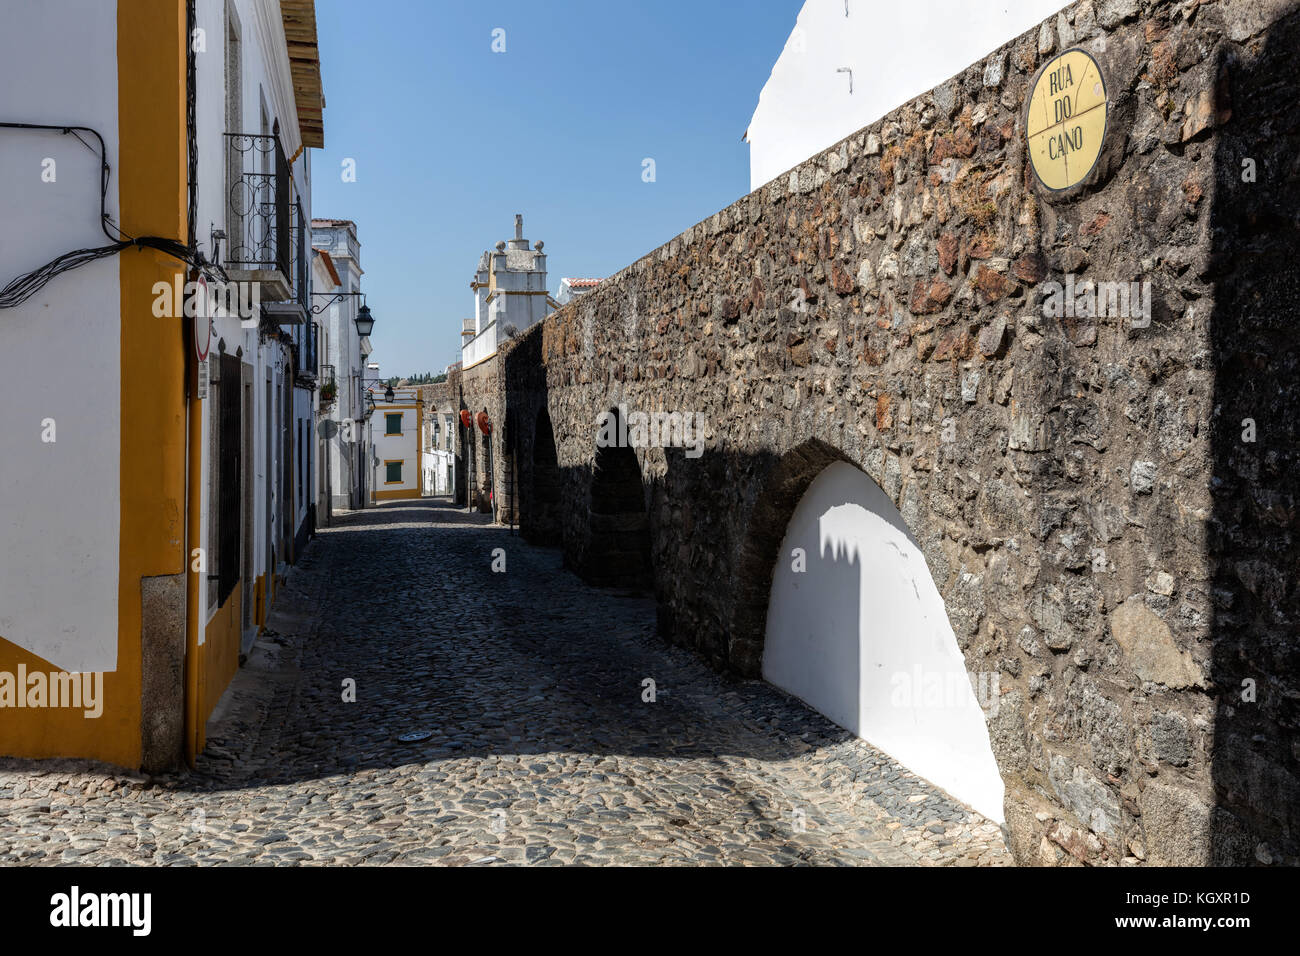 Evora aqueduct, one of the Iberian Peninsula's greatest 16th century building projects - Stock Image